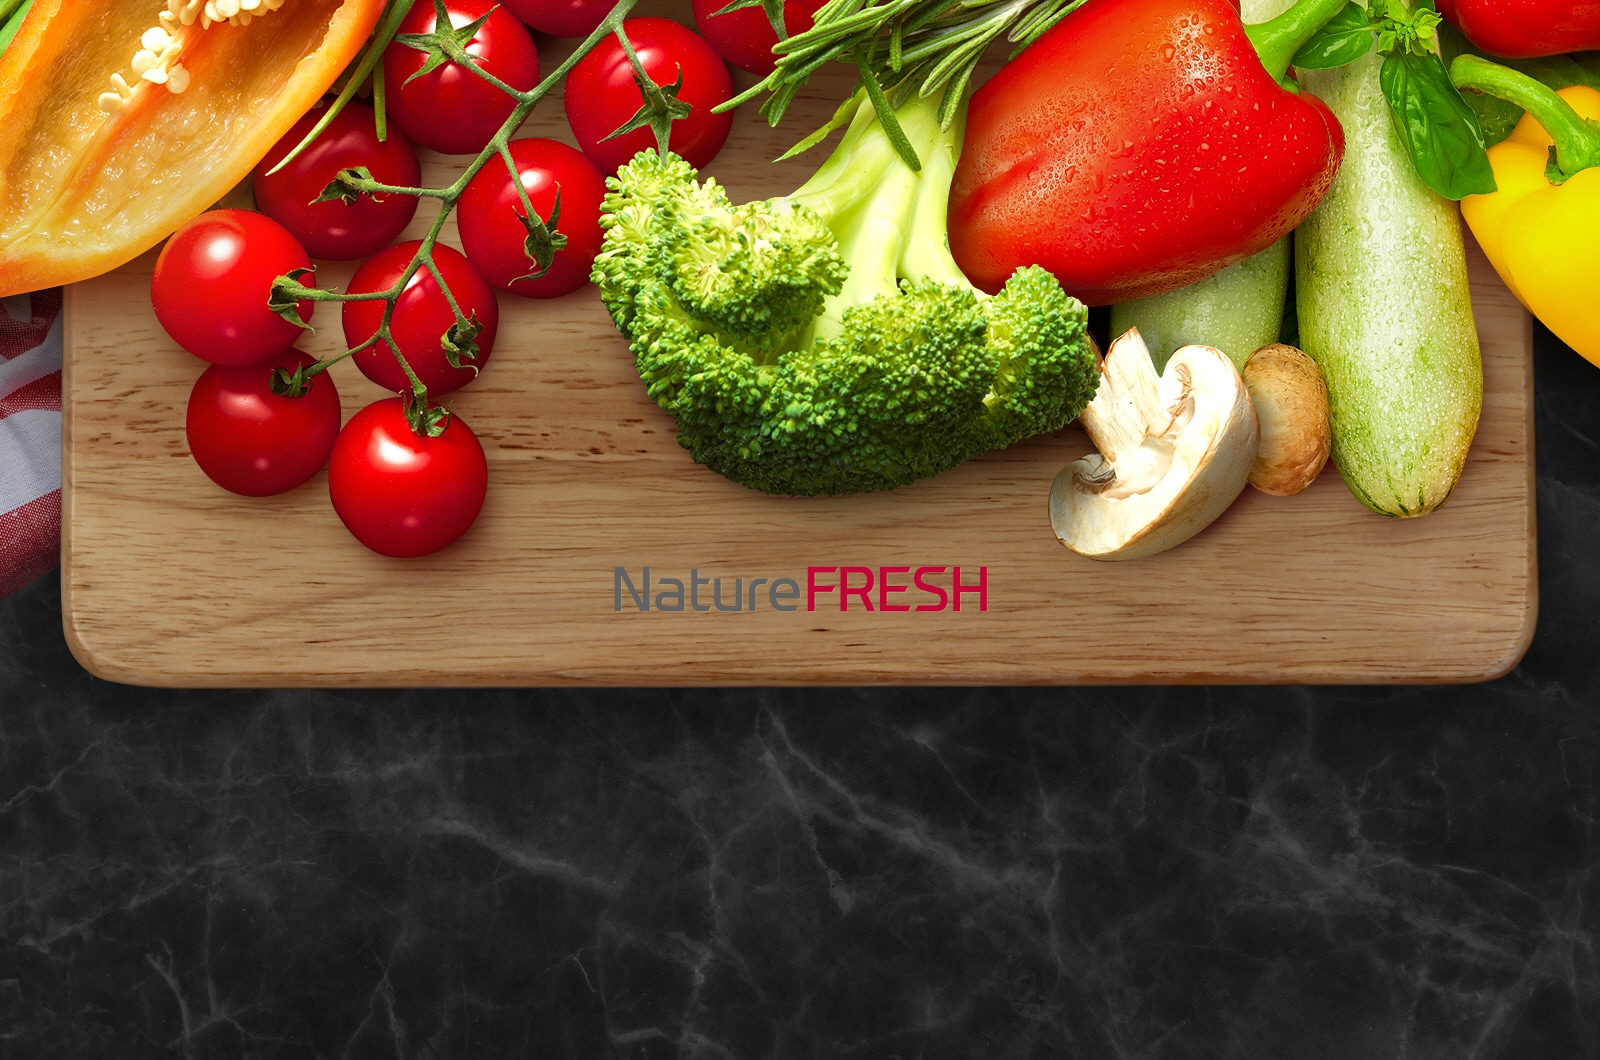 Global_Pollux_2016_Feature_02_NatureFRESH_D.jpg